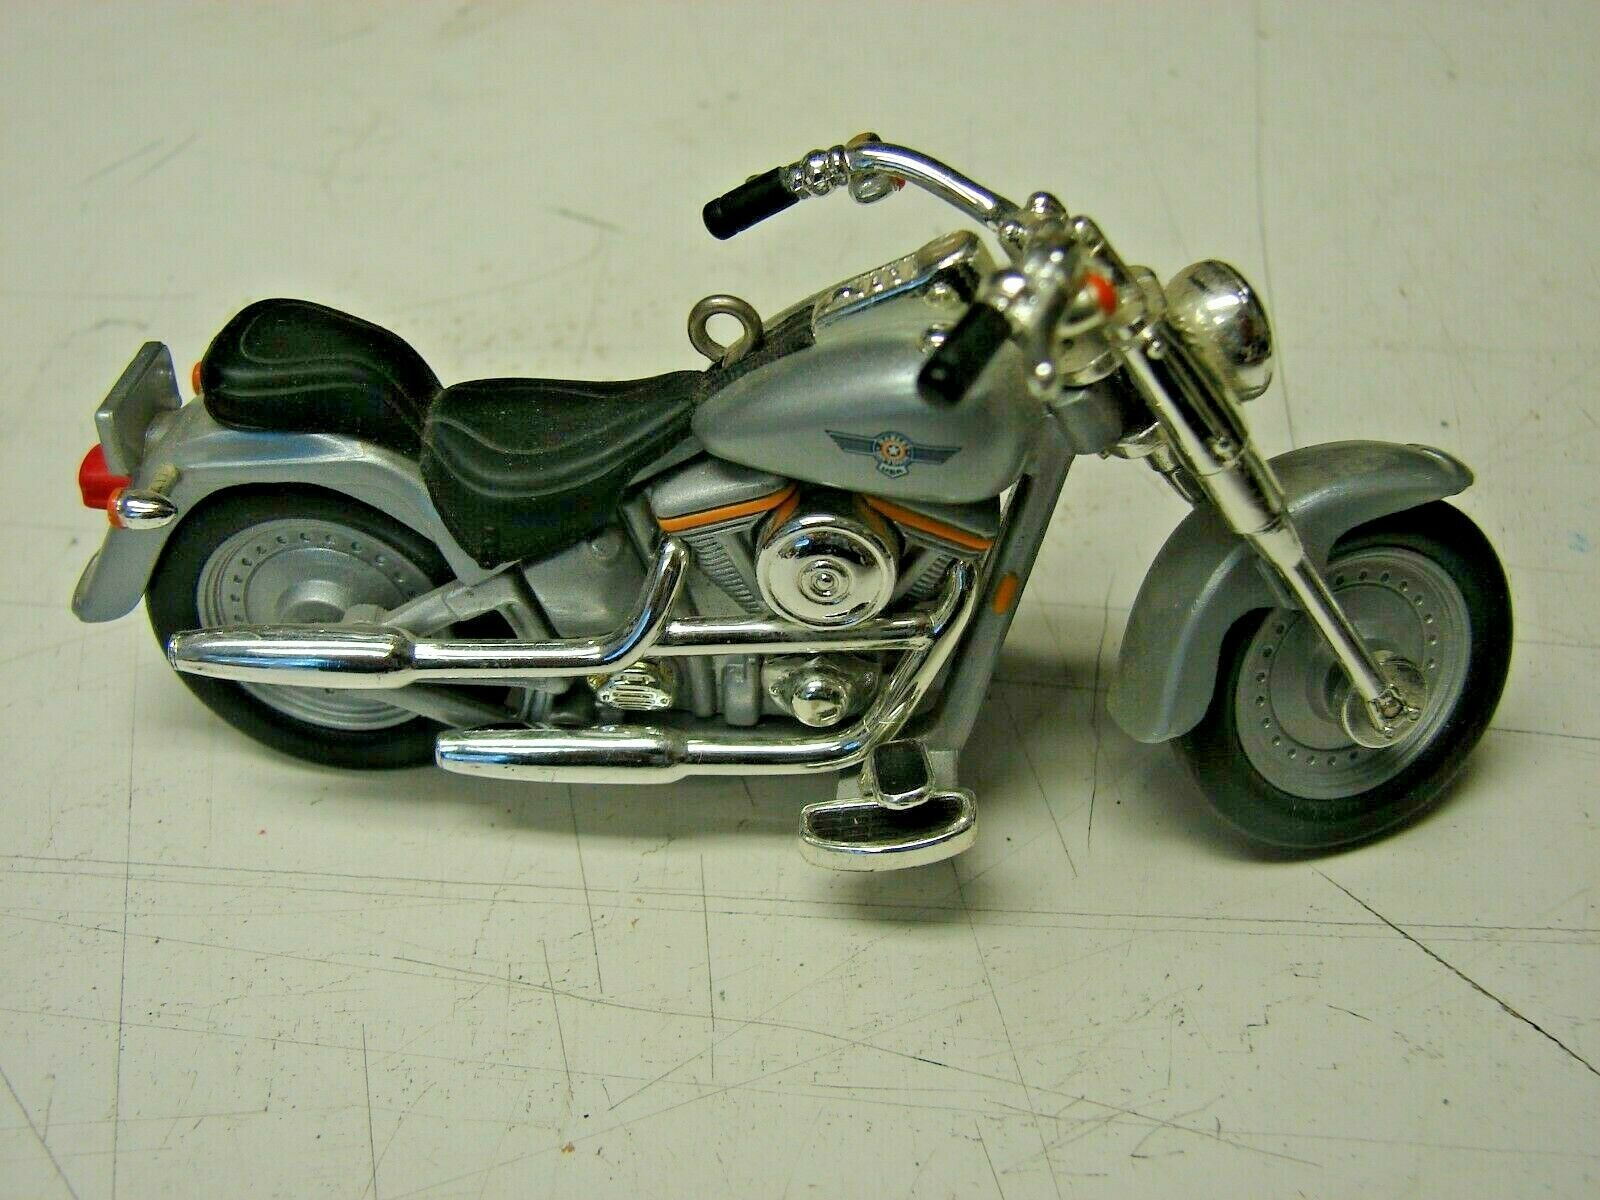 Harley-Davidson FLSTF FATBOY 1990 Motorcycle Model 4 inches long image 2